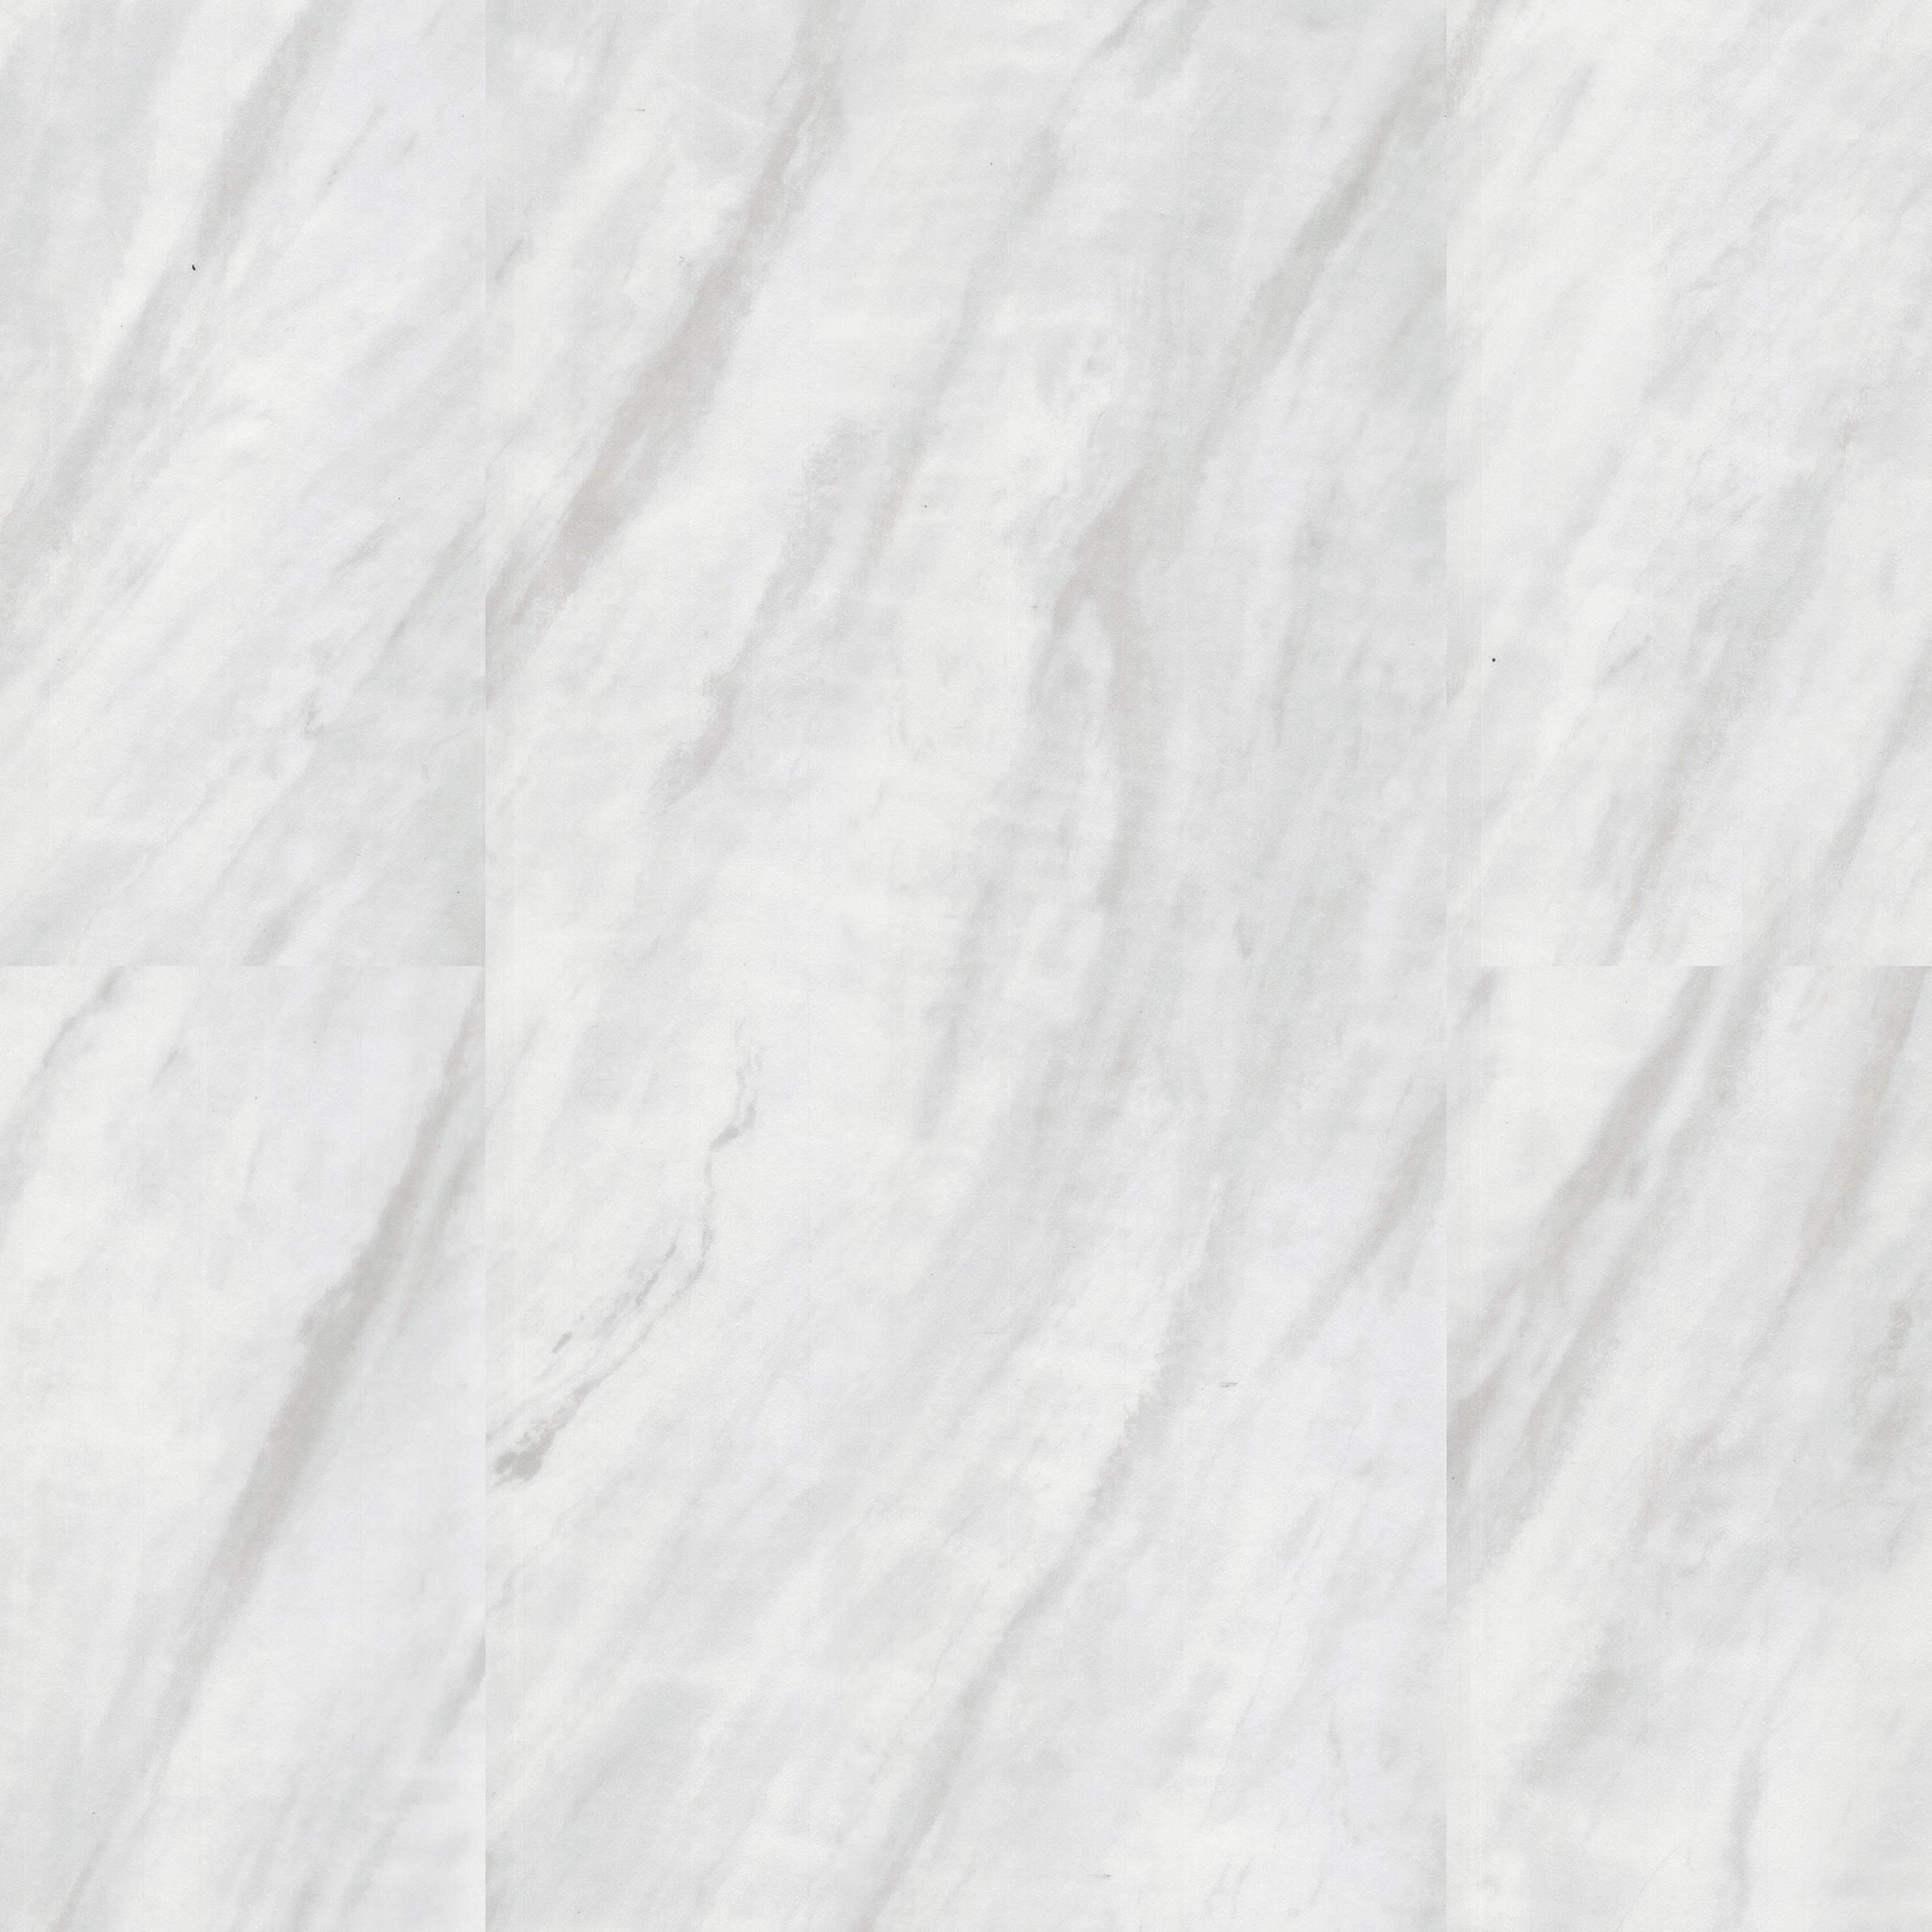 Moduleo Vision Light Grey Marble 12 X 24 Click Together Luxury Vinyl Tile Flooring Marble Countertops Carrera Marble Carrara